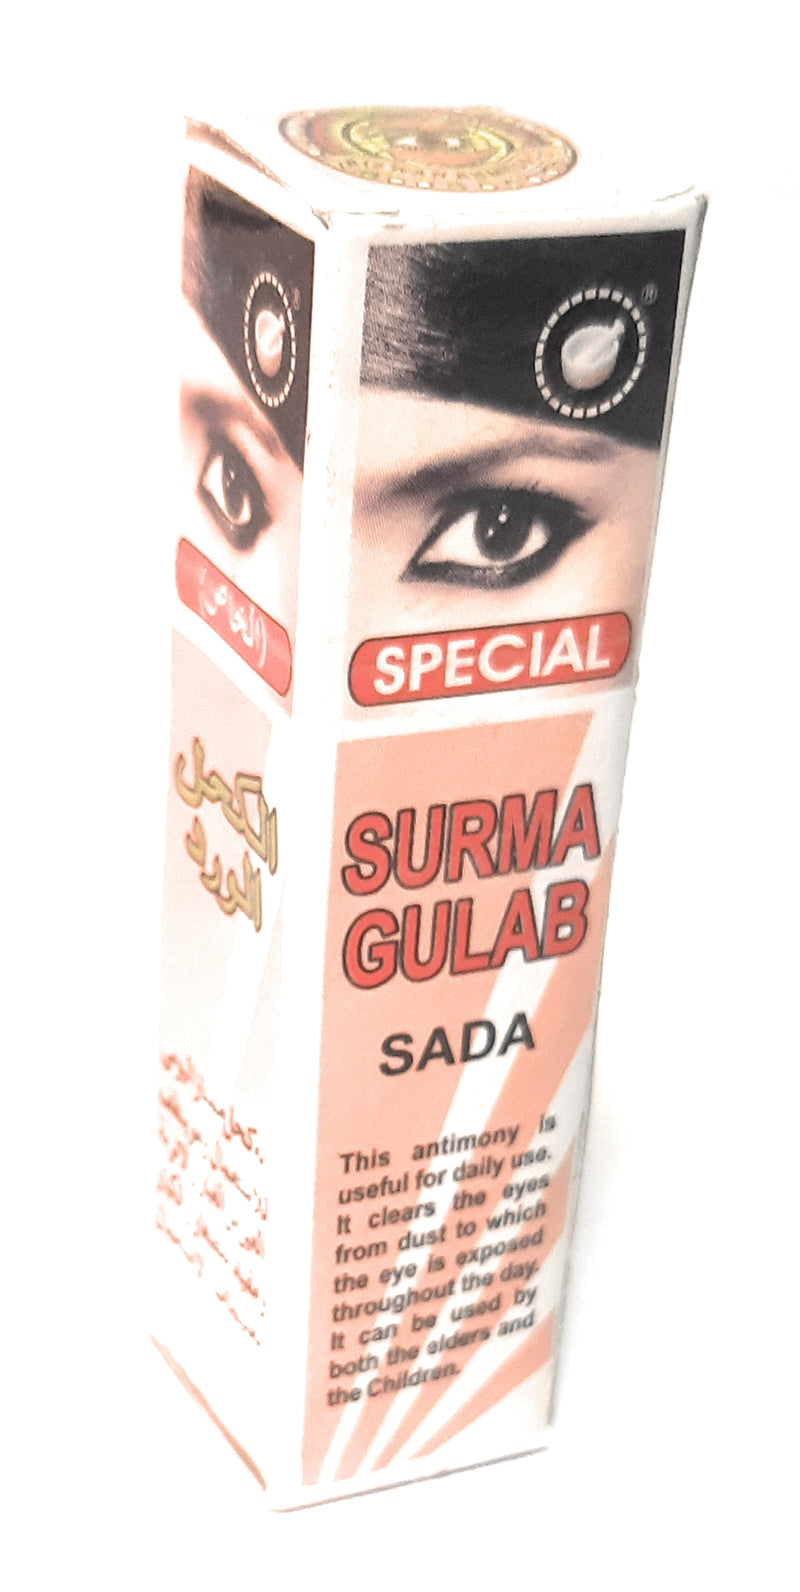 Surma : Powder Kohl (100% natural) for men and women